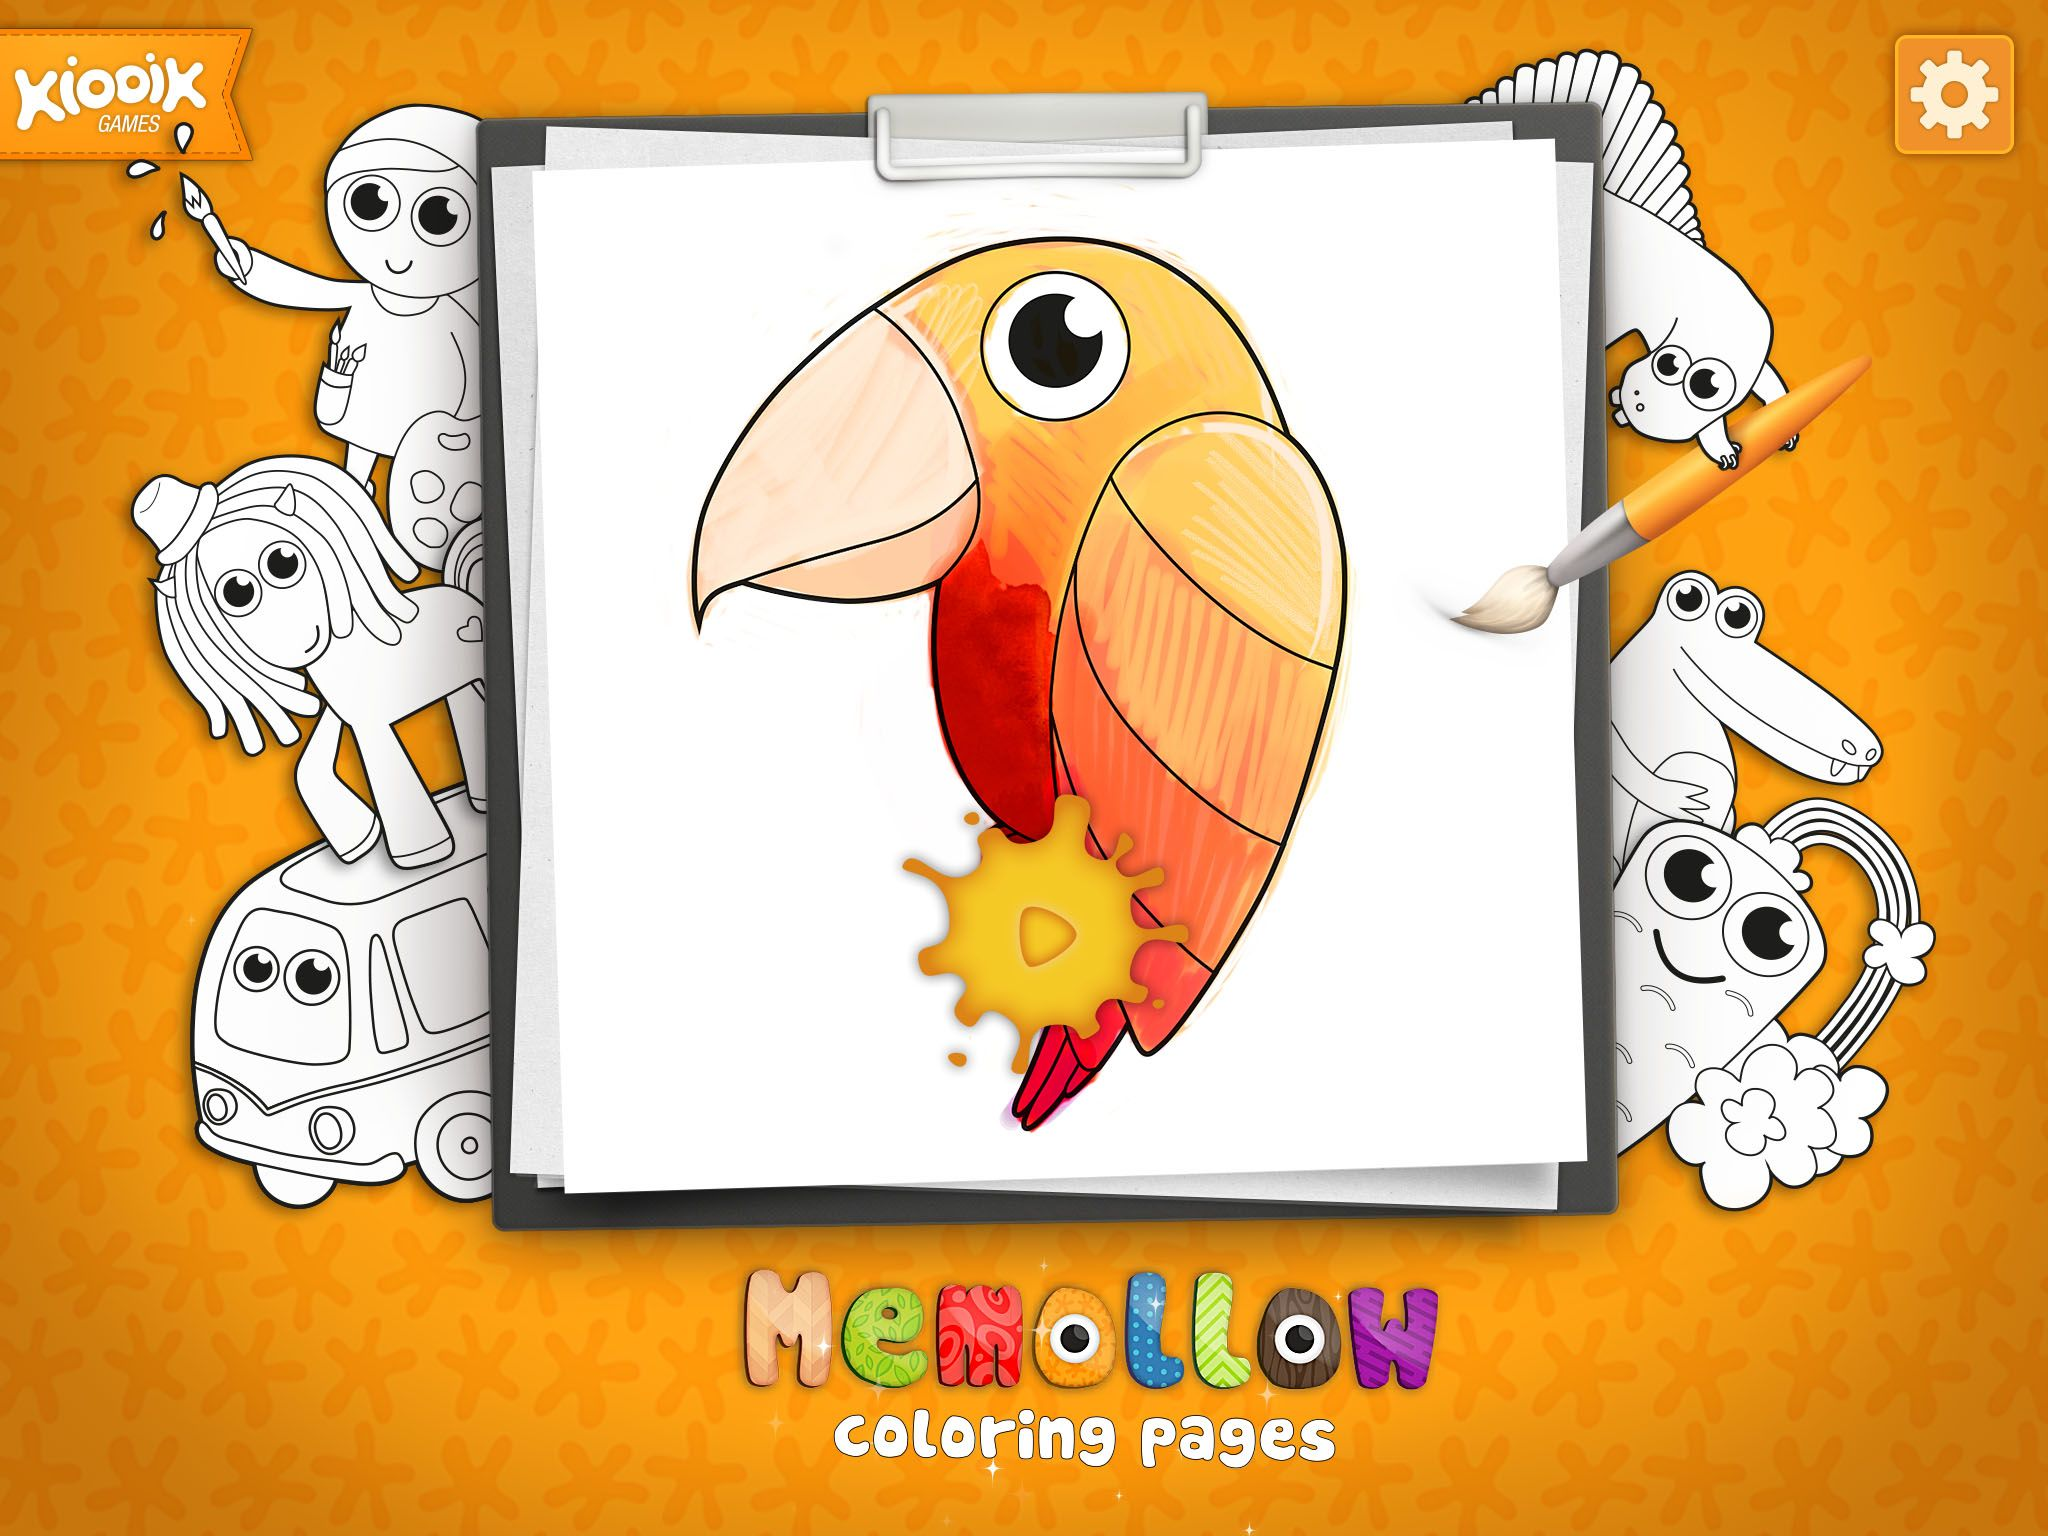 Free coloring pages app - 1000 Images About Memollow Coloring Pages On Pinterest Coloring For Kids And Coloring Pages For Kids